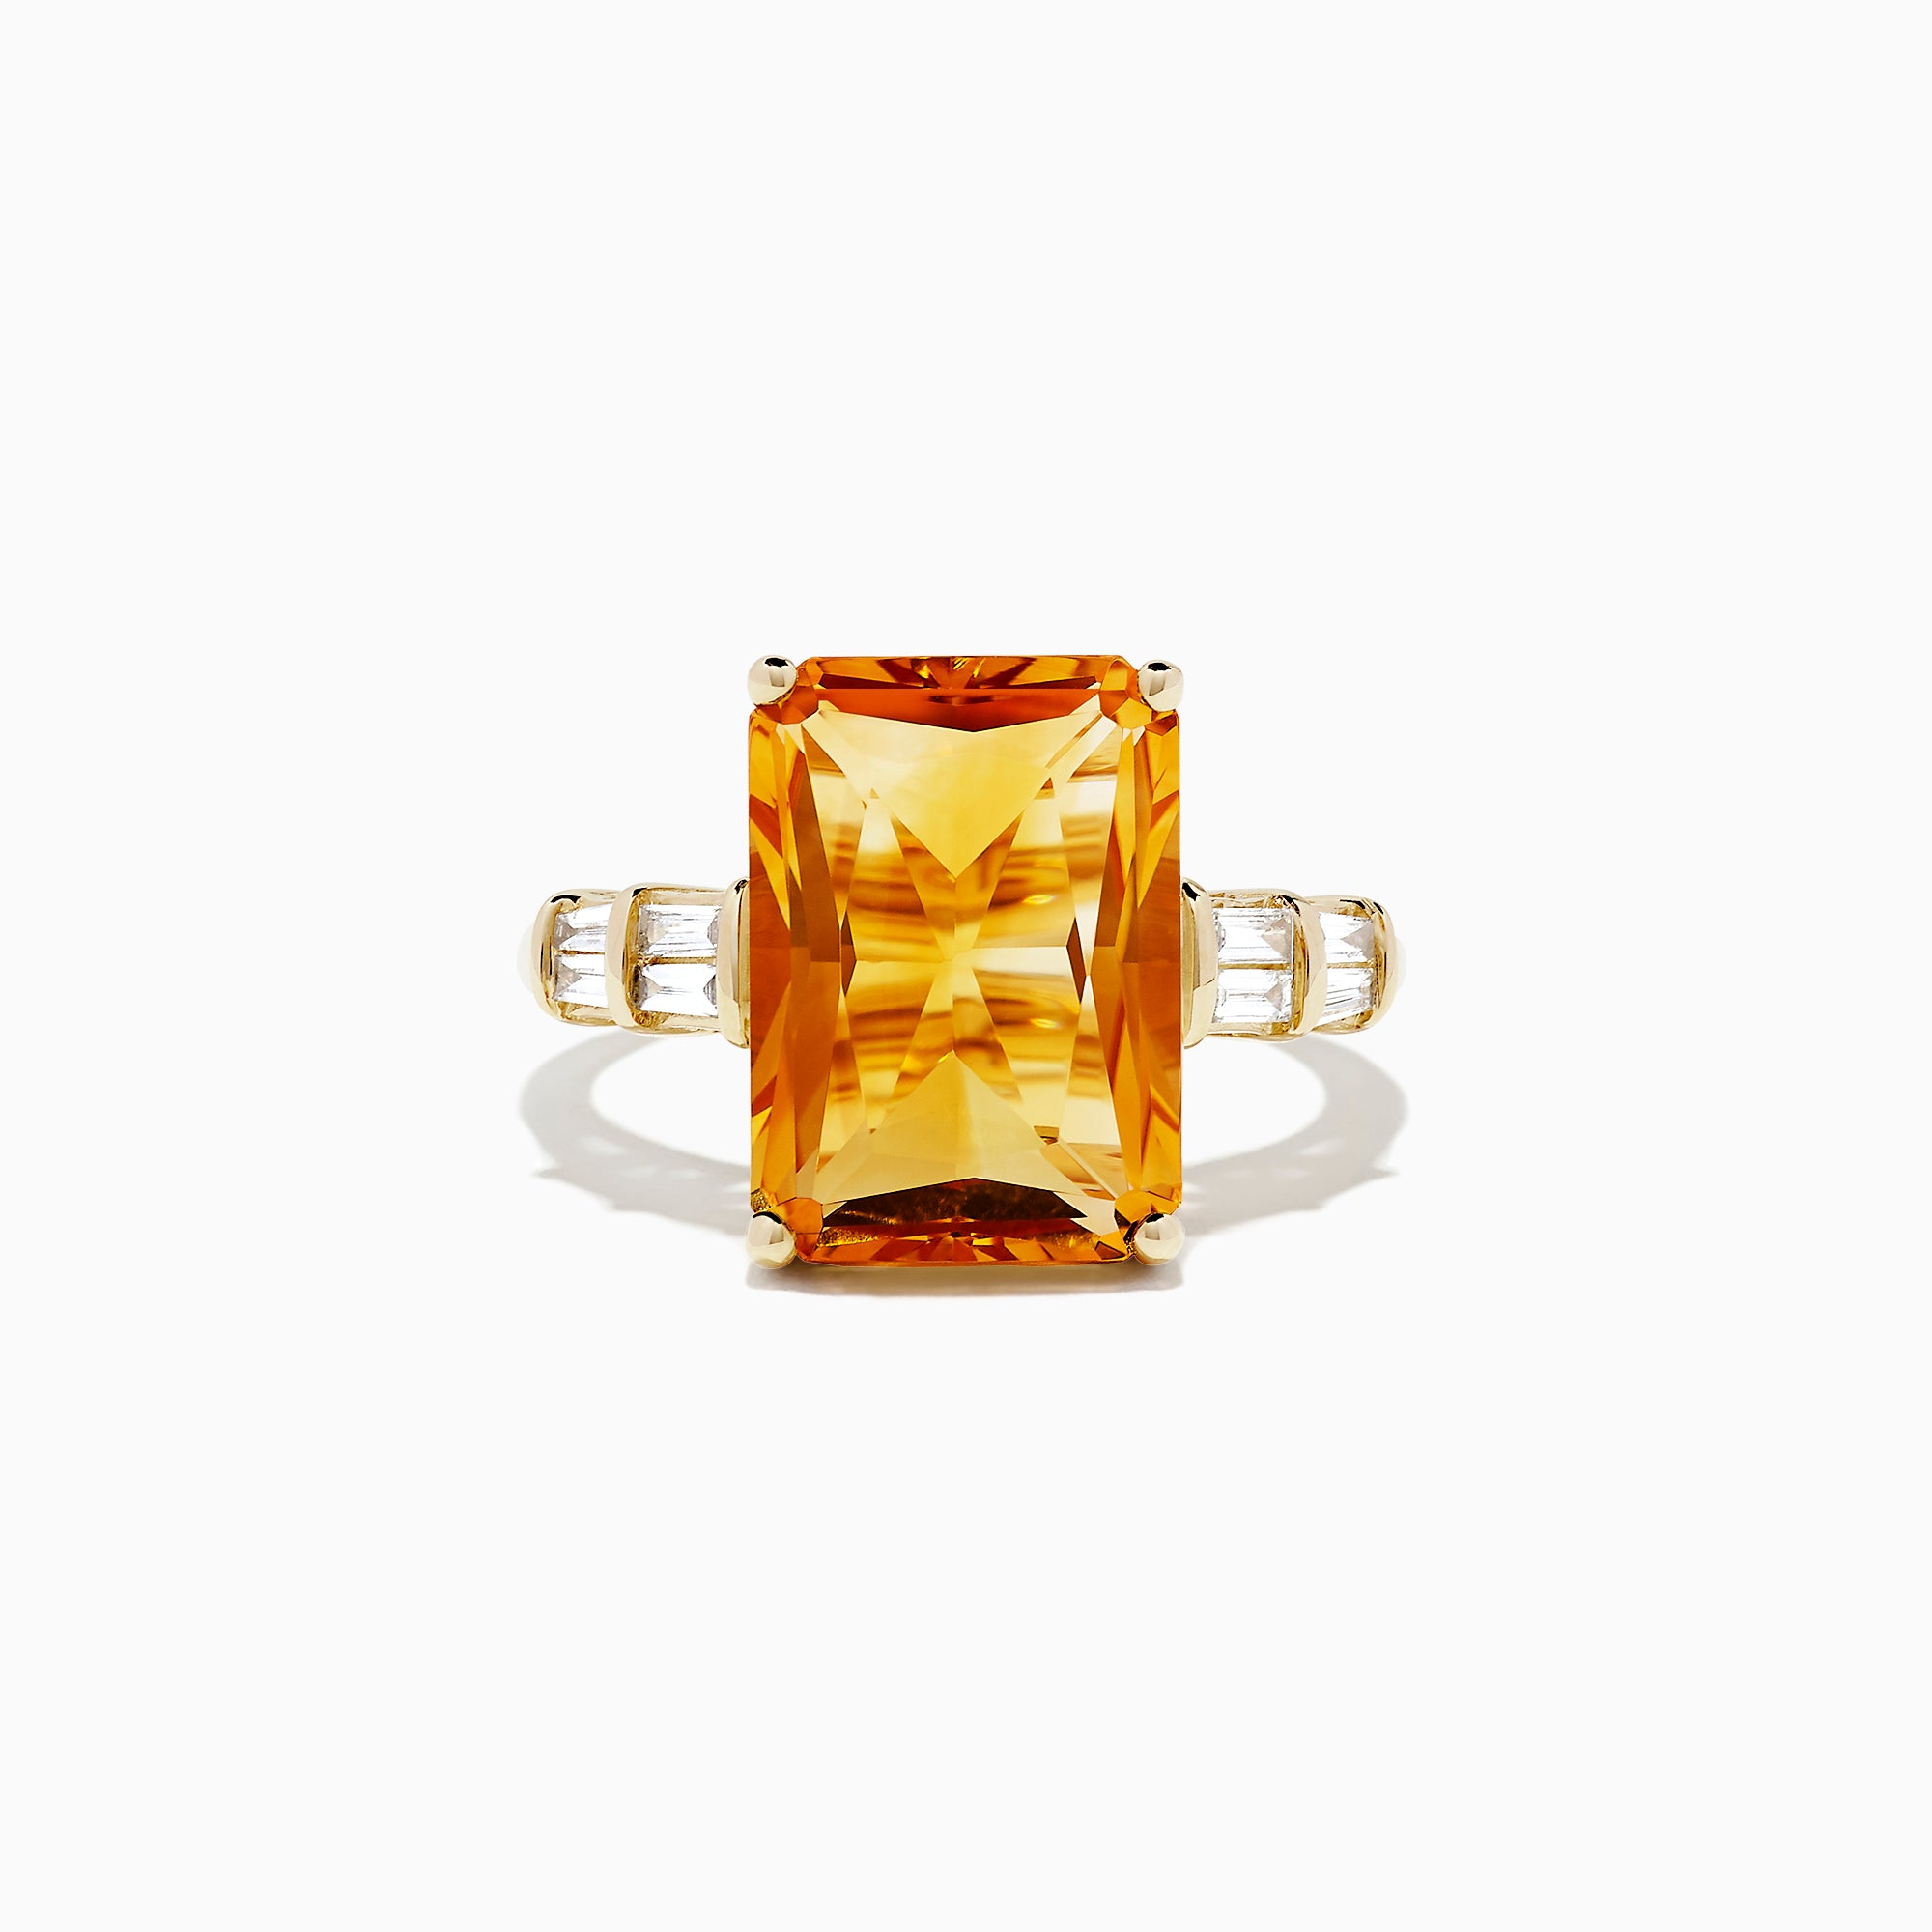 Effy Sunset 14K Yellow Gold Citrine and Diamond Ring, 7.02 TCW